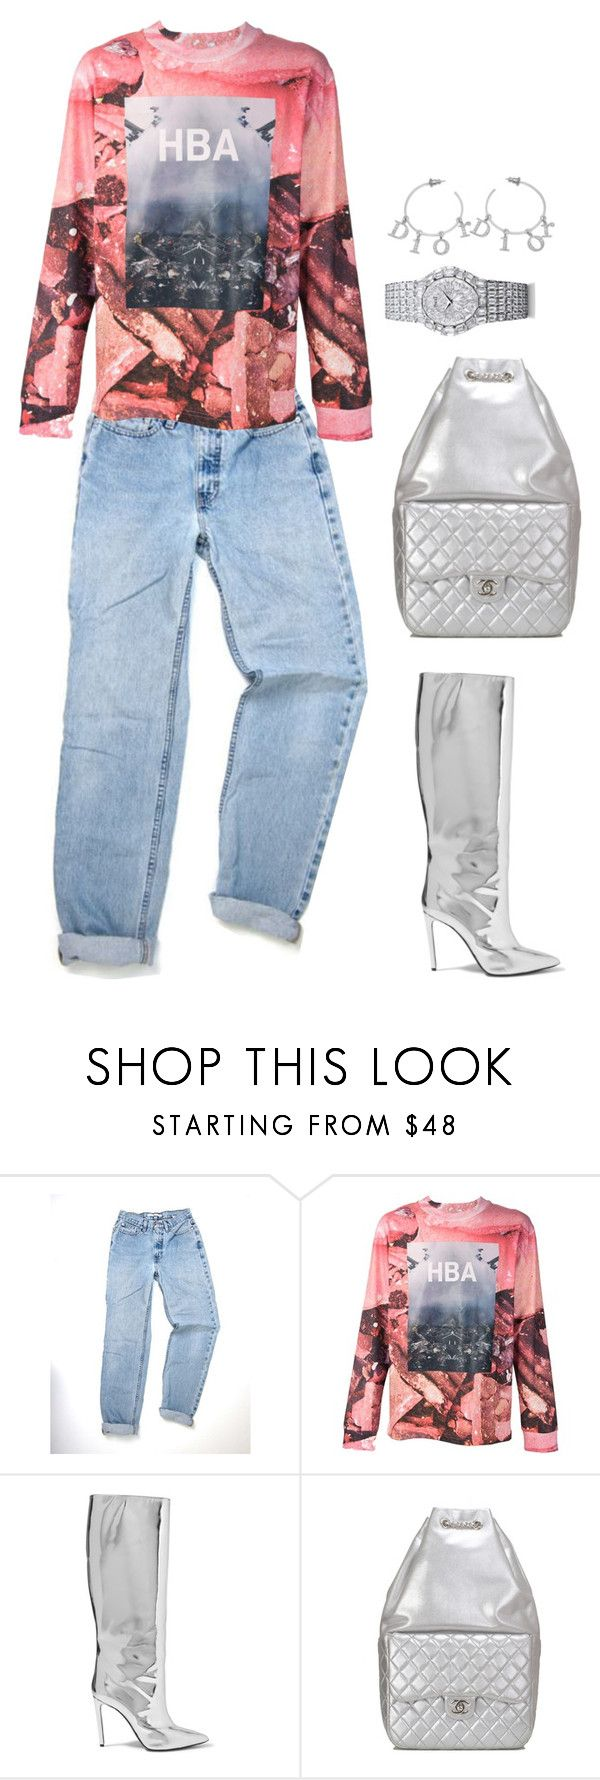 """""""Untitled #2235"""" by mollface ❤ liked on Polyvore featuring Hood by Air, Balenciaga, Chanel and Piaget"""